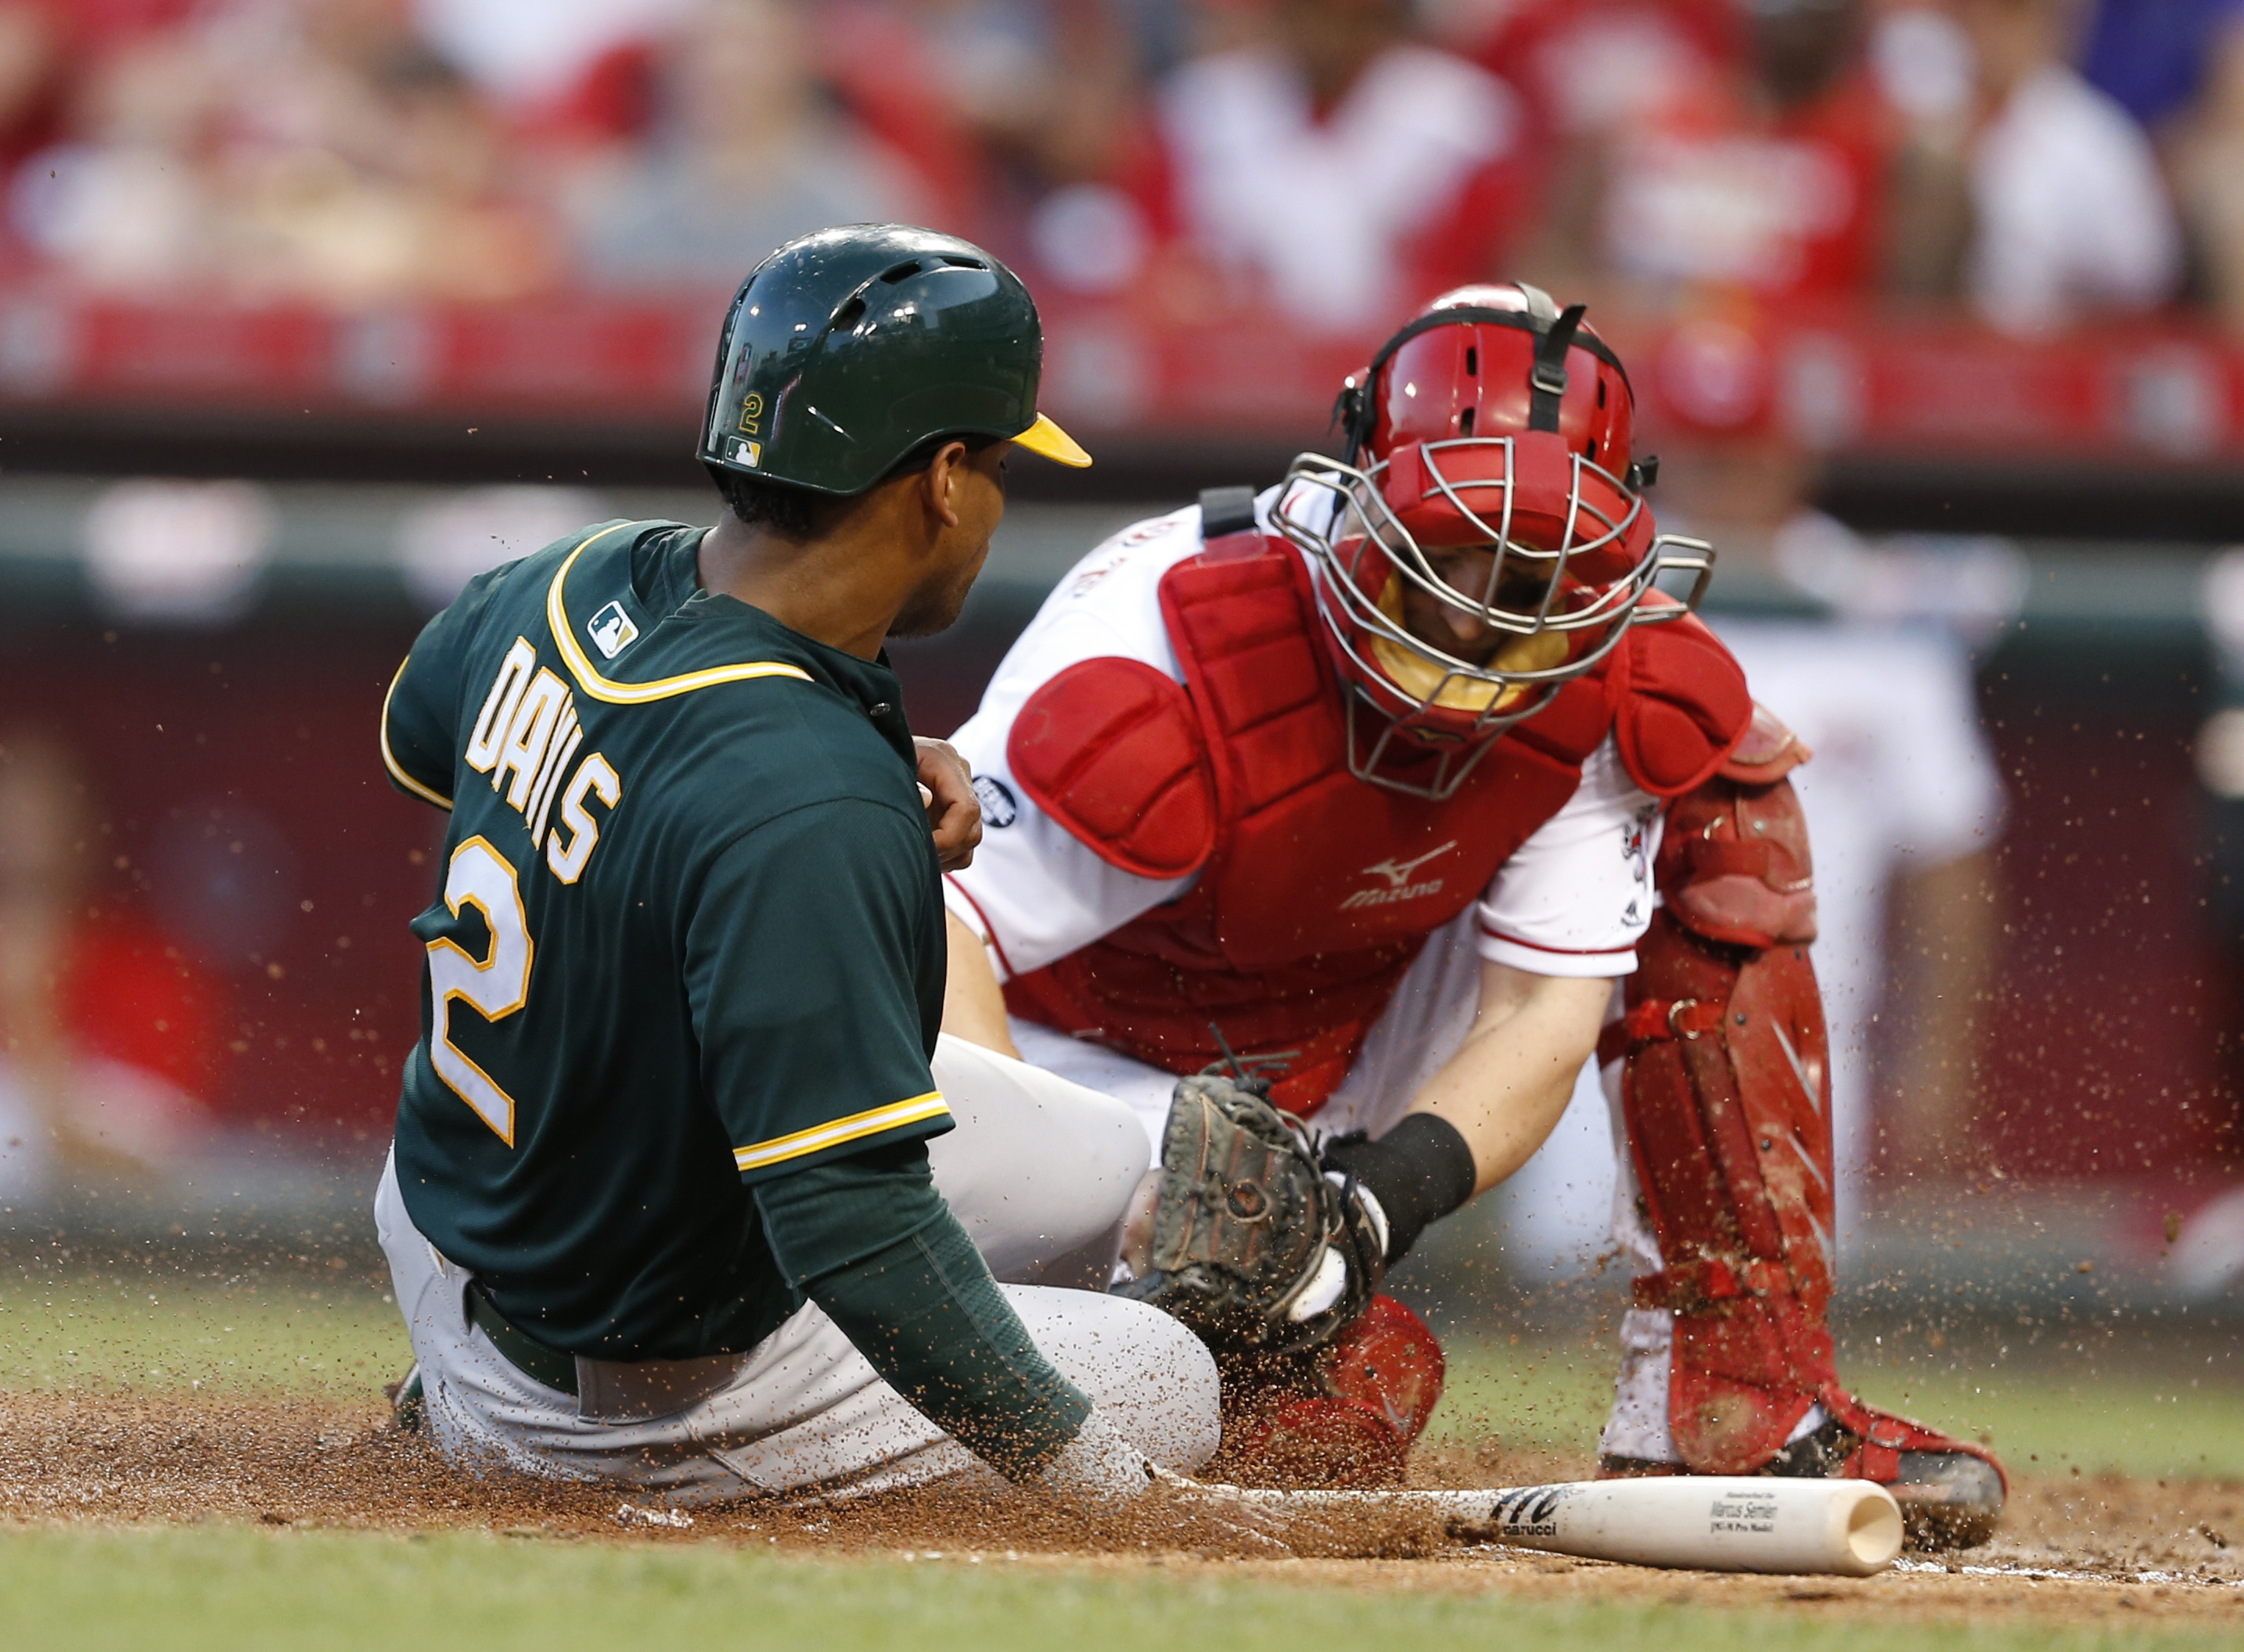 Oakland Athletics Khris Davis (2) is tagged out at the plate, attempting to score, by Cincinnati Reds catcher Tucker Barnhart during the sixth inning of a baseball game, Friday, June 10, 2016, in Cincinnati. (AP Photo/Gary Landers)